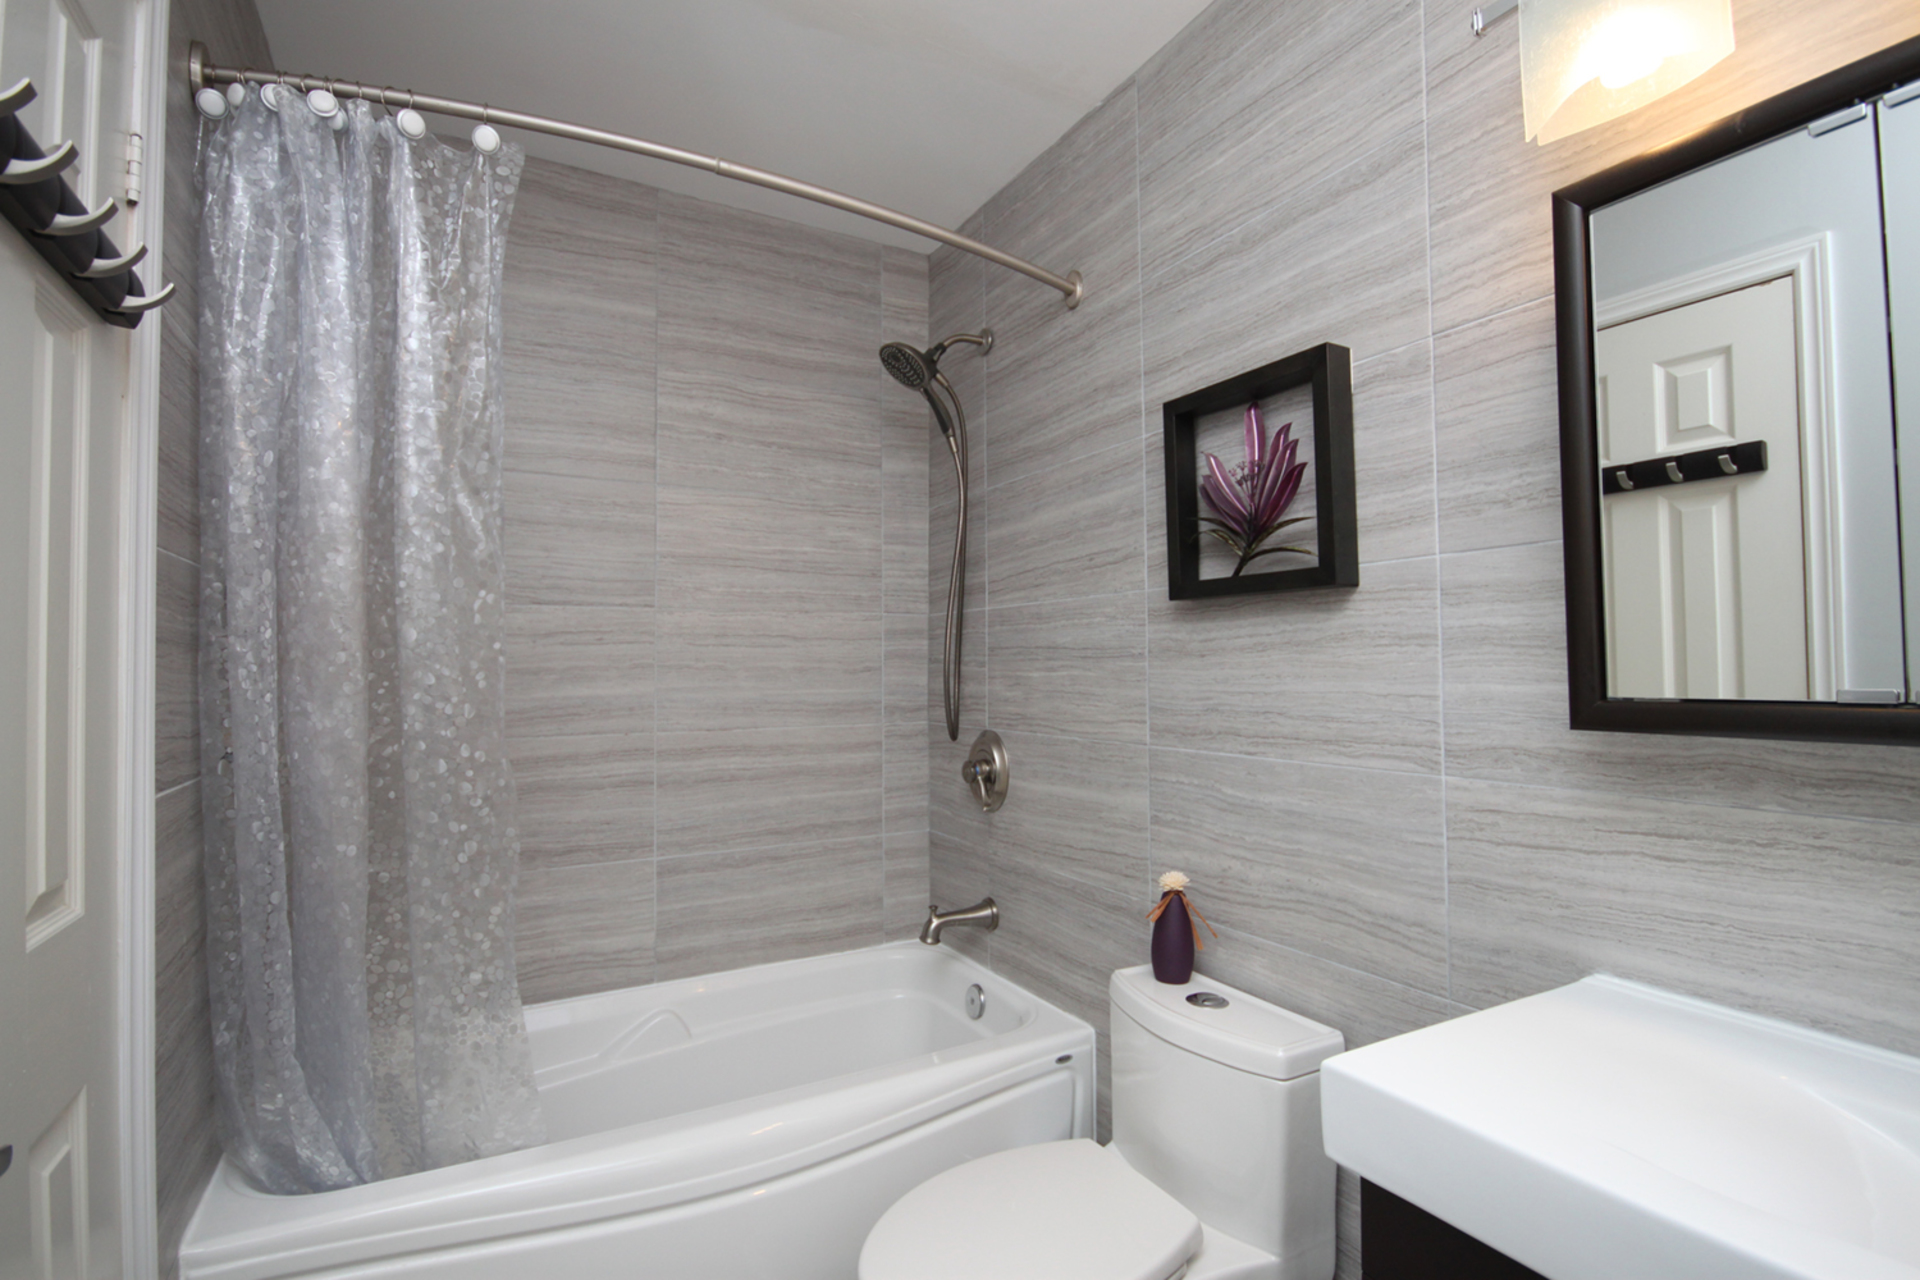 4 Piece Ensuite Bathroom at 14 Gretman Crescent, Aileen-Willowbrook, Markham